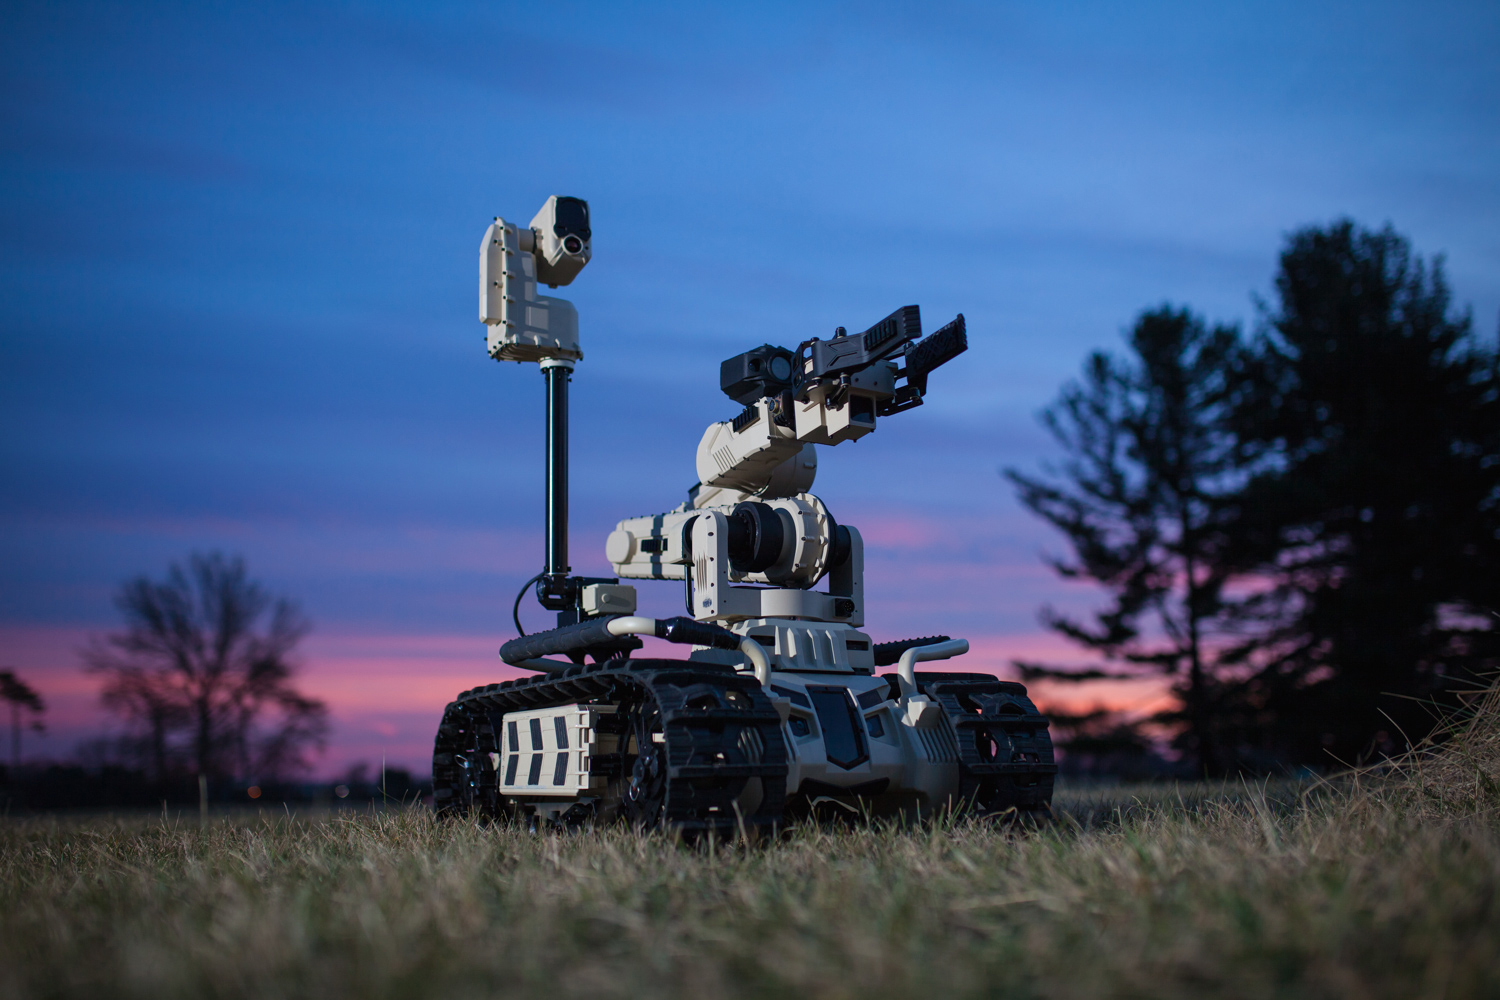 Roboteam Set to Launch Next Generation of Military Ground Robot at AUSA 2017 | Business Wire